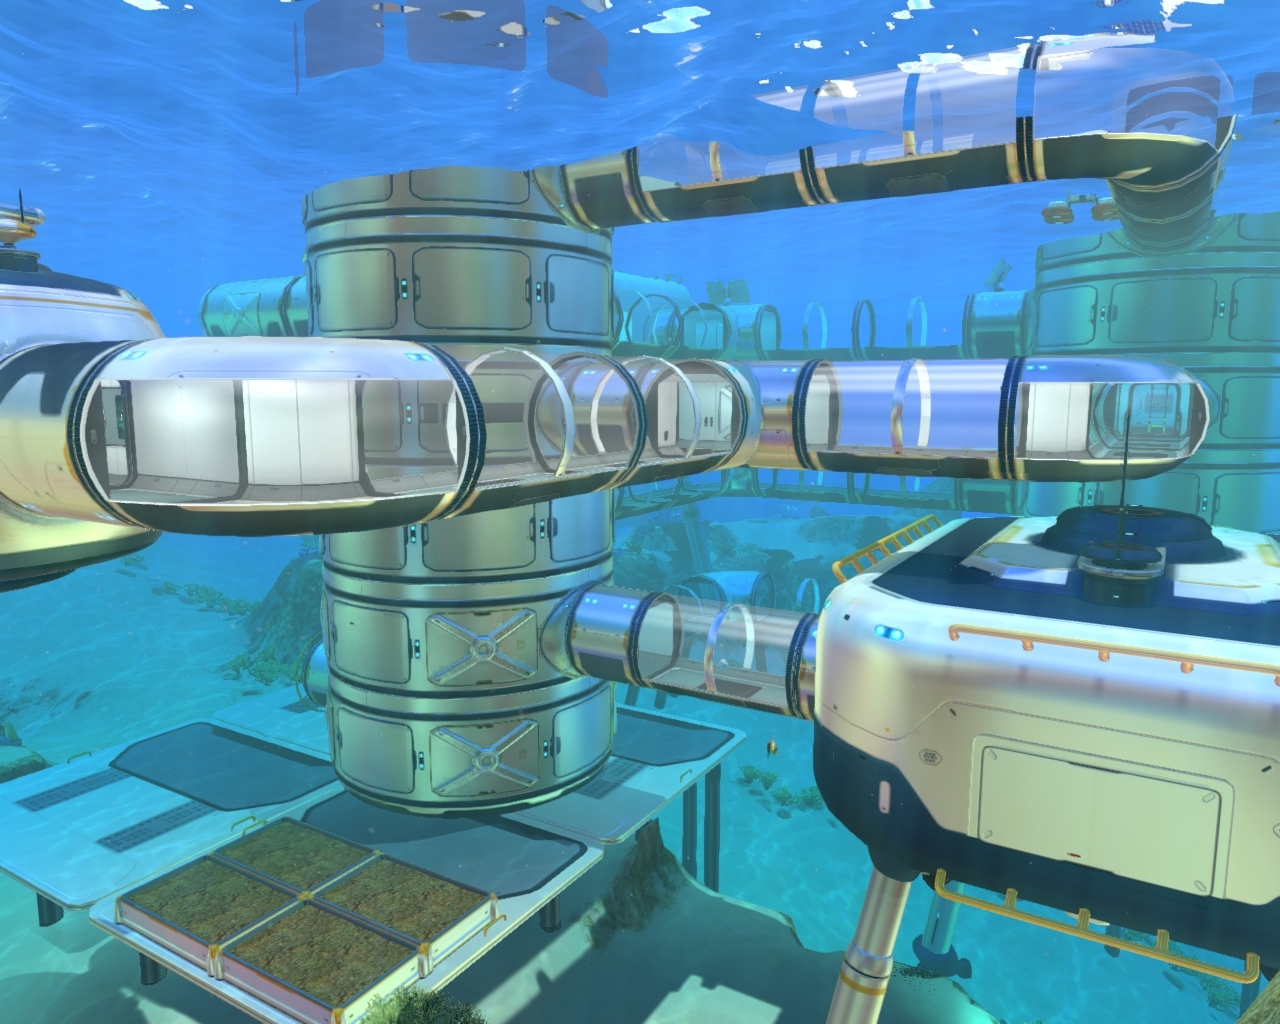 Subnautica Scanner Room Connect / This is subnautica gameplay, part 31.